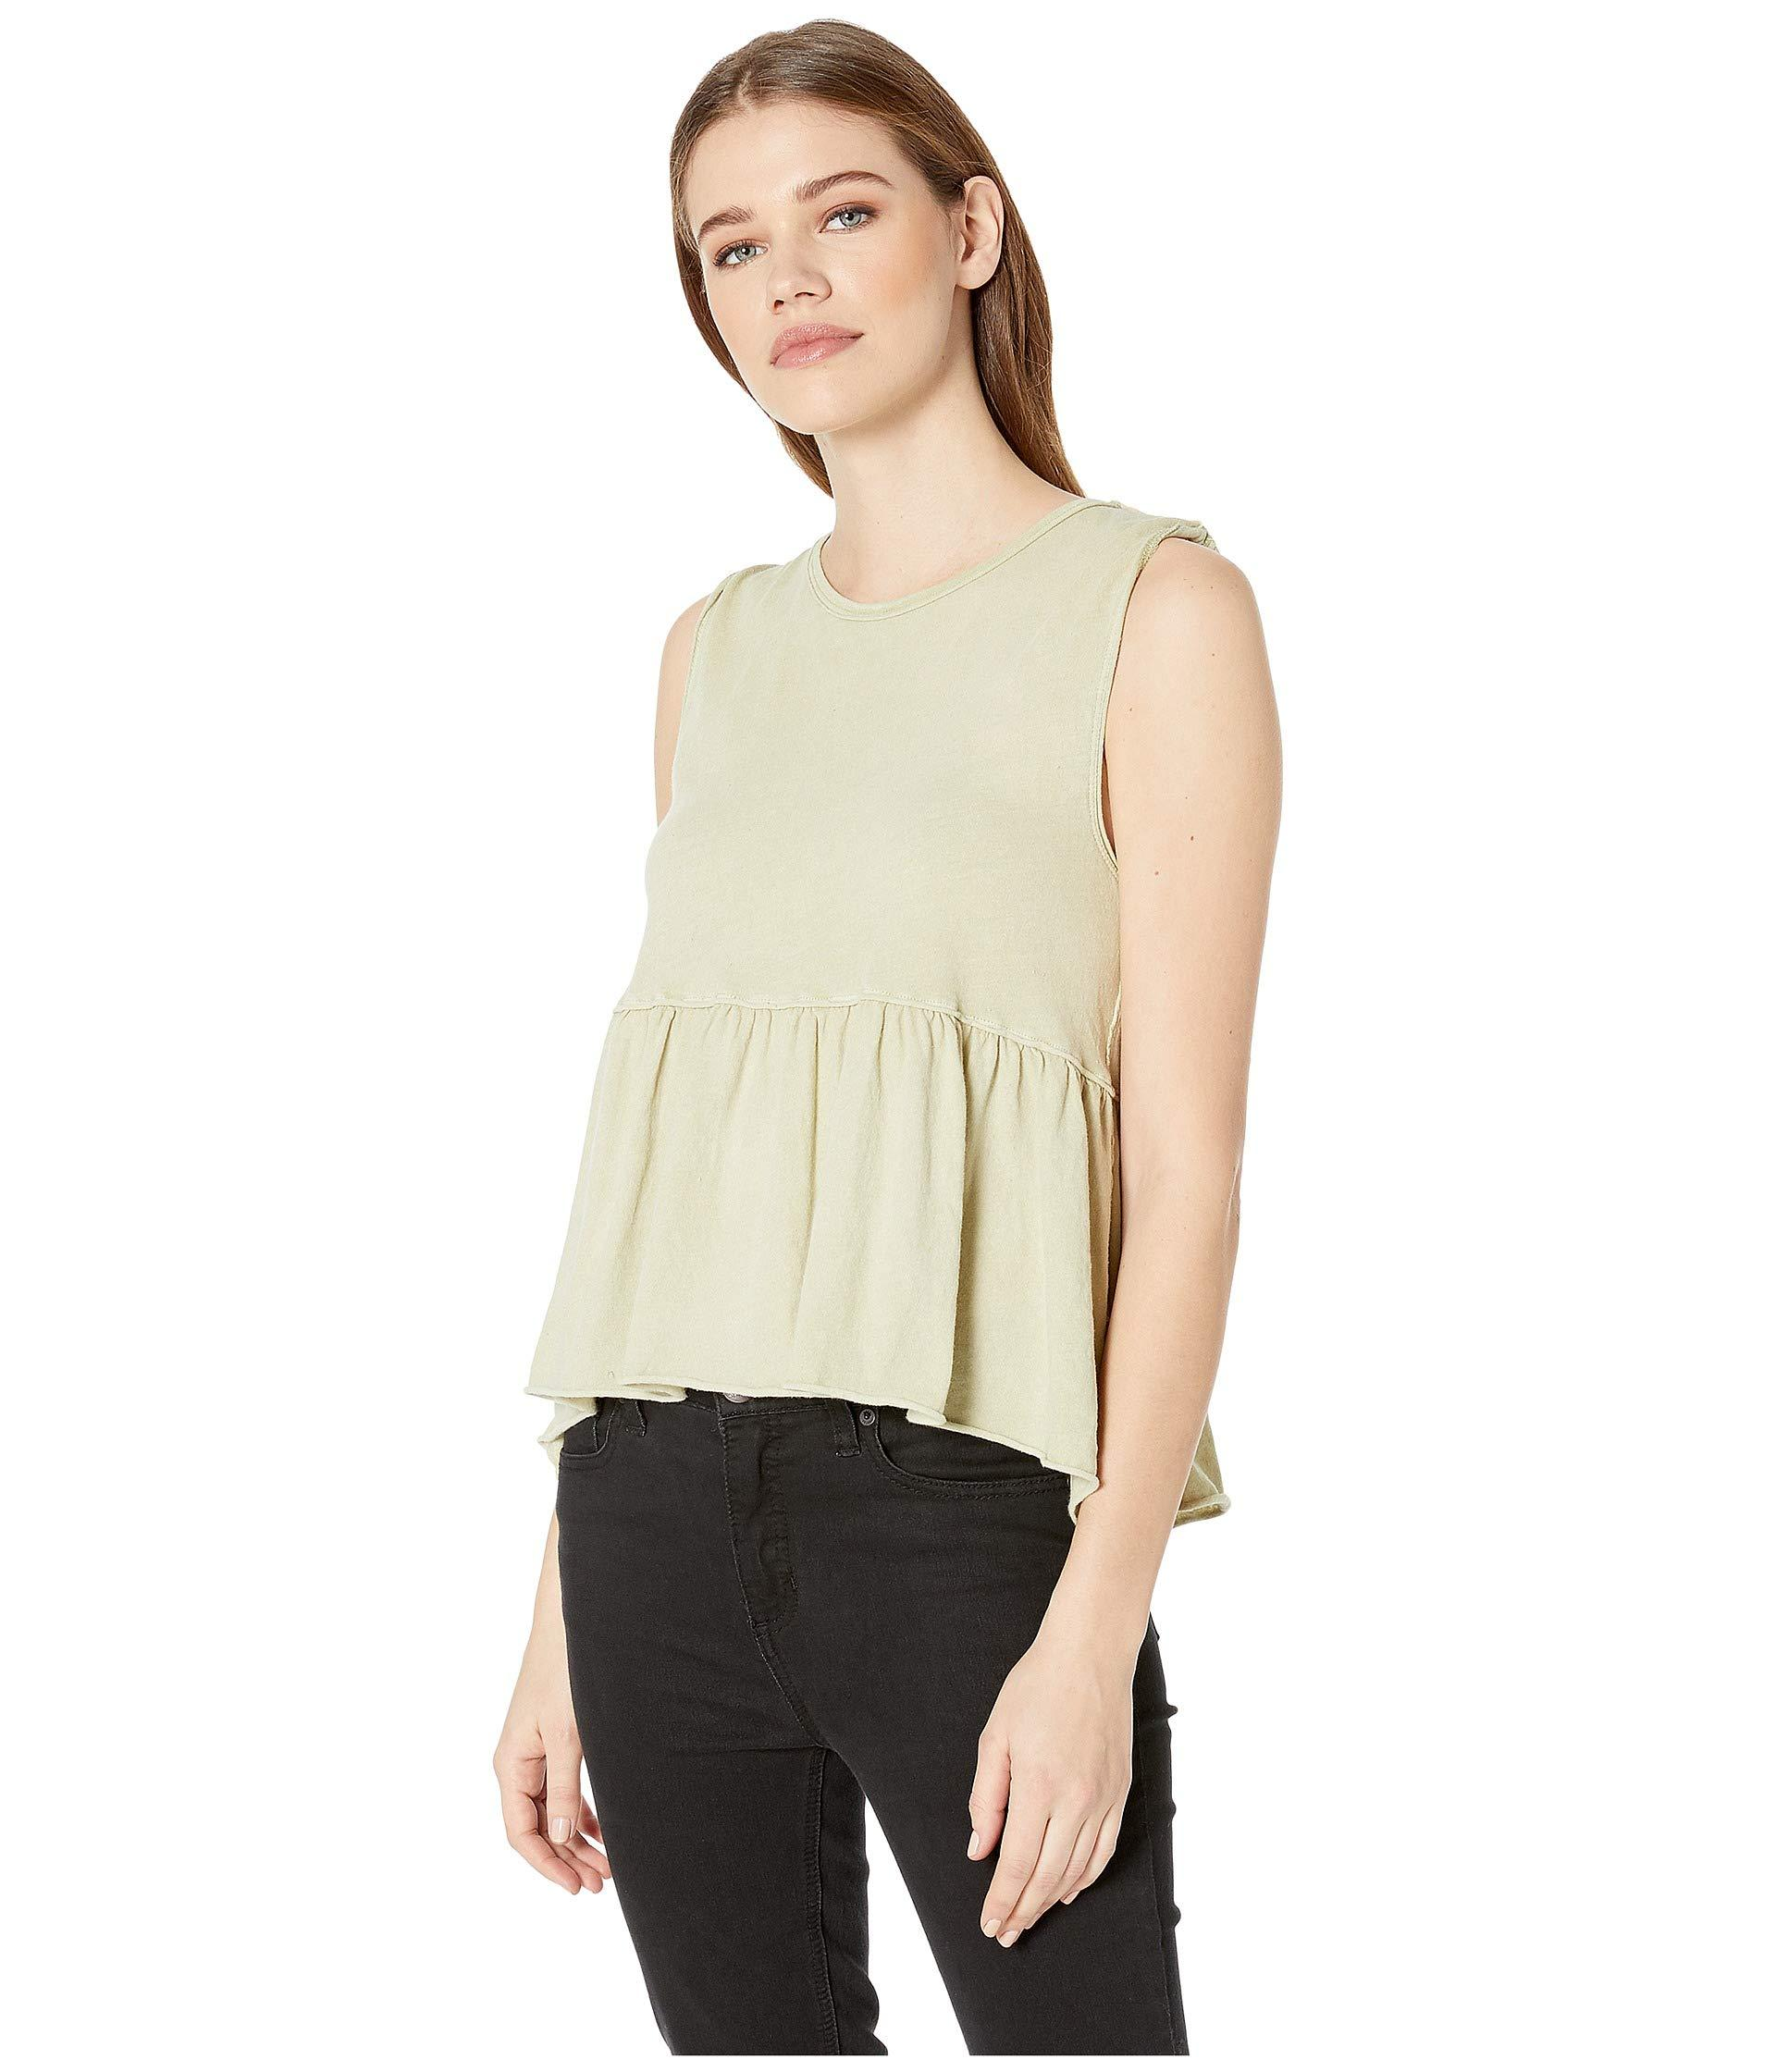 b5178684ceb6e Lyst - Free People Anytime Tank Top (ivory) Women s Sleeveless in Green